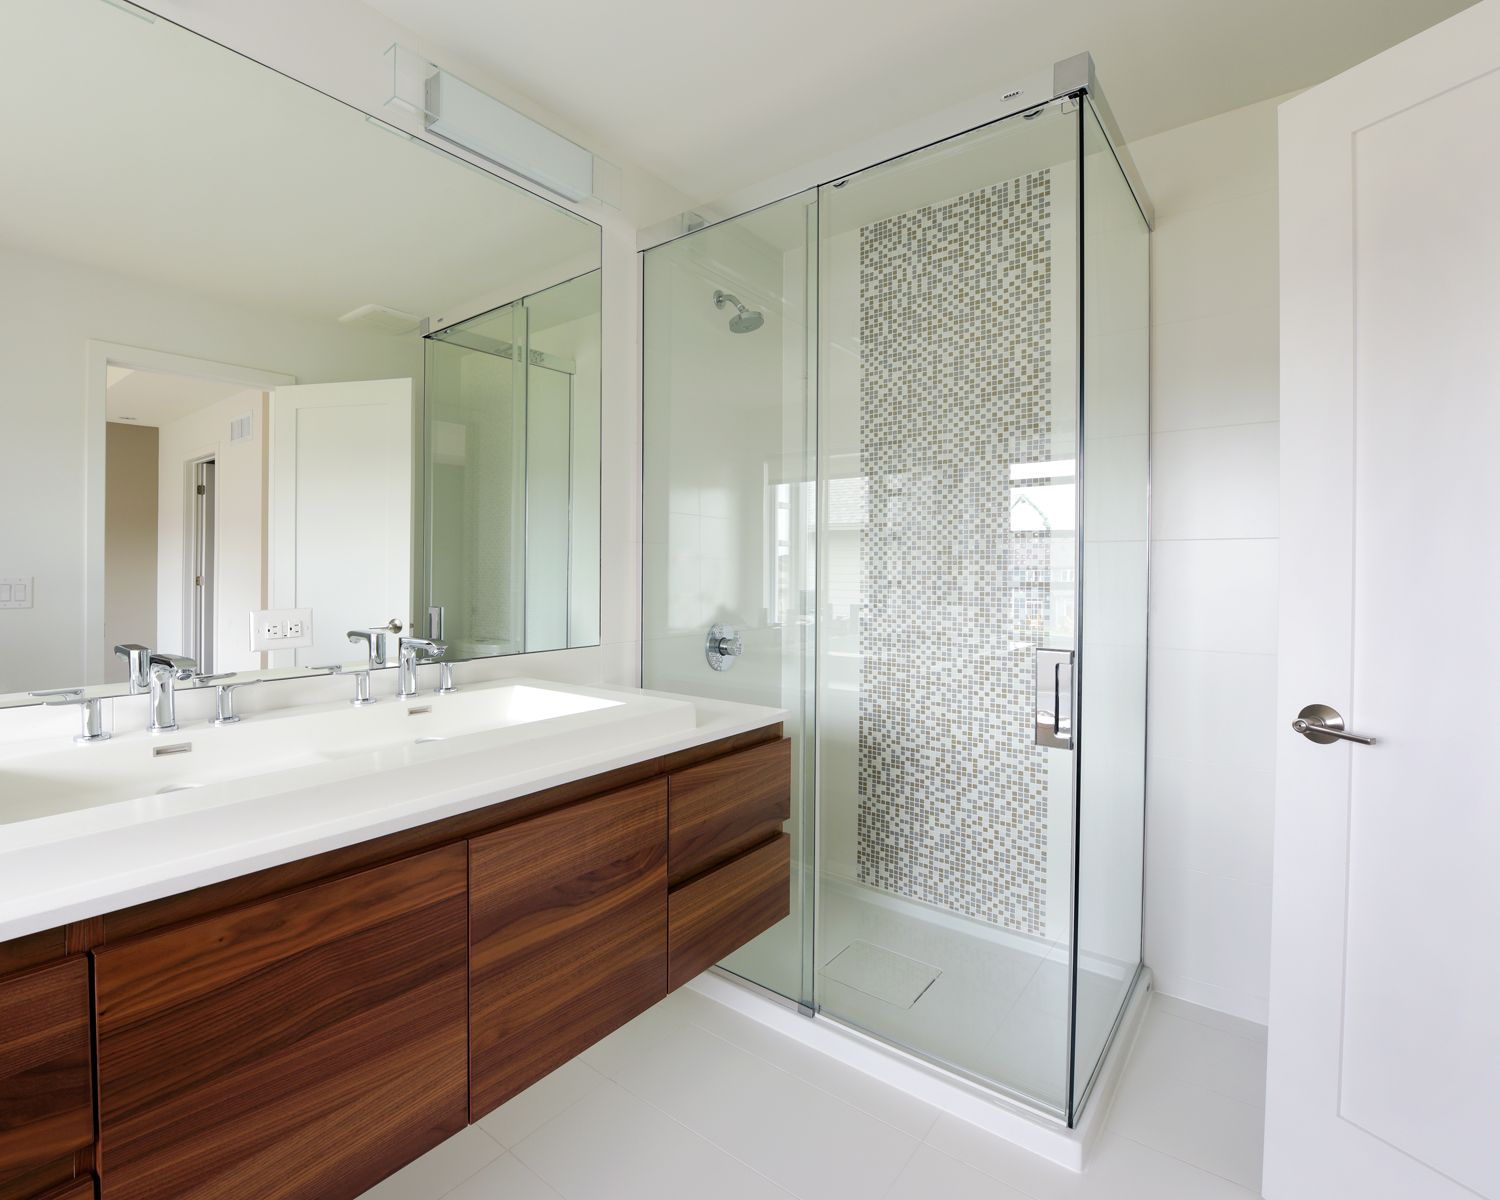 A mosaic tile detail adds visual interest to the shower. | туалеты ...